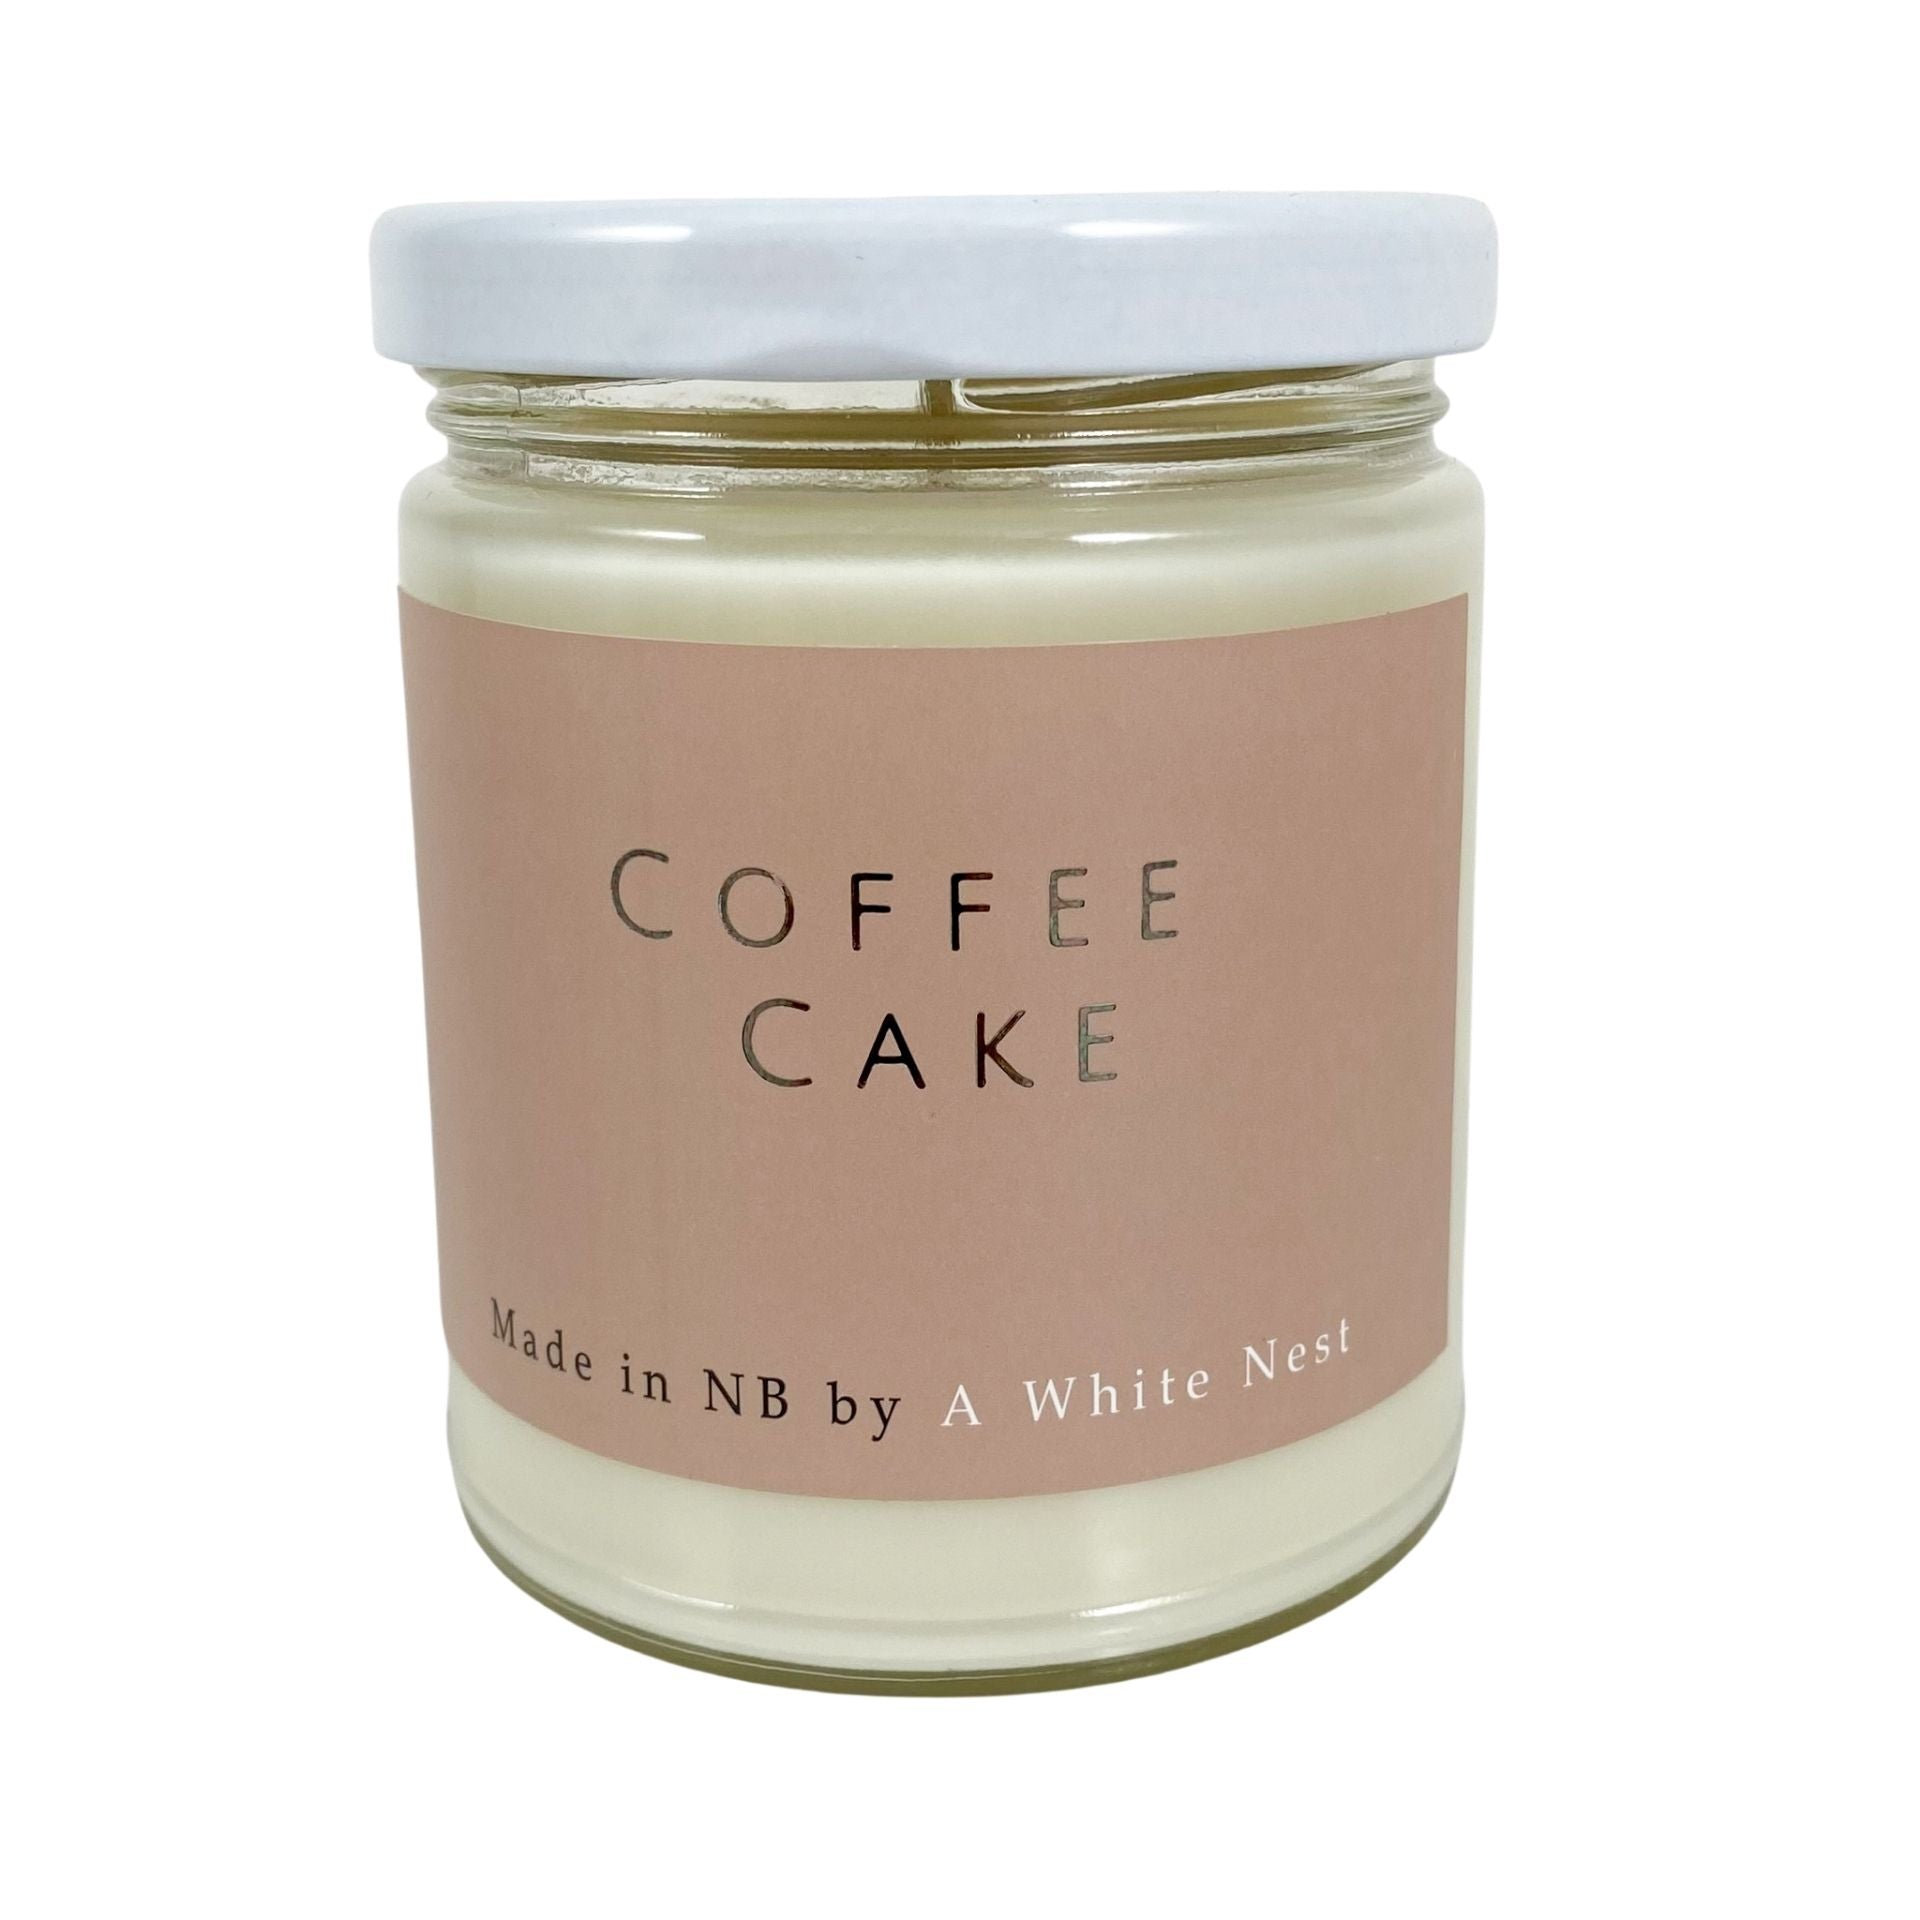 Coffee Cake Soy Wax Candle